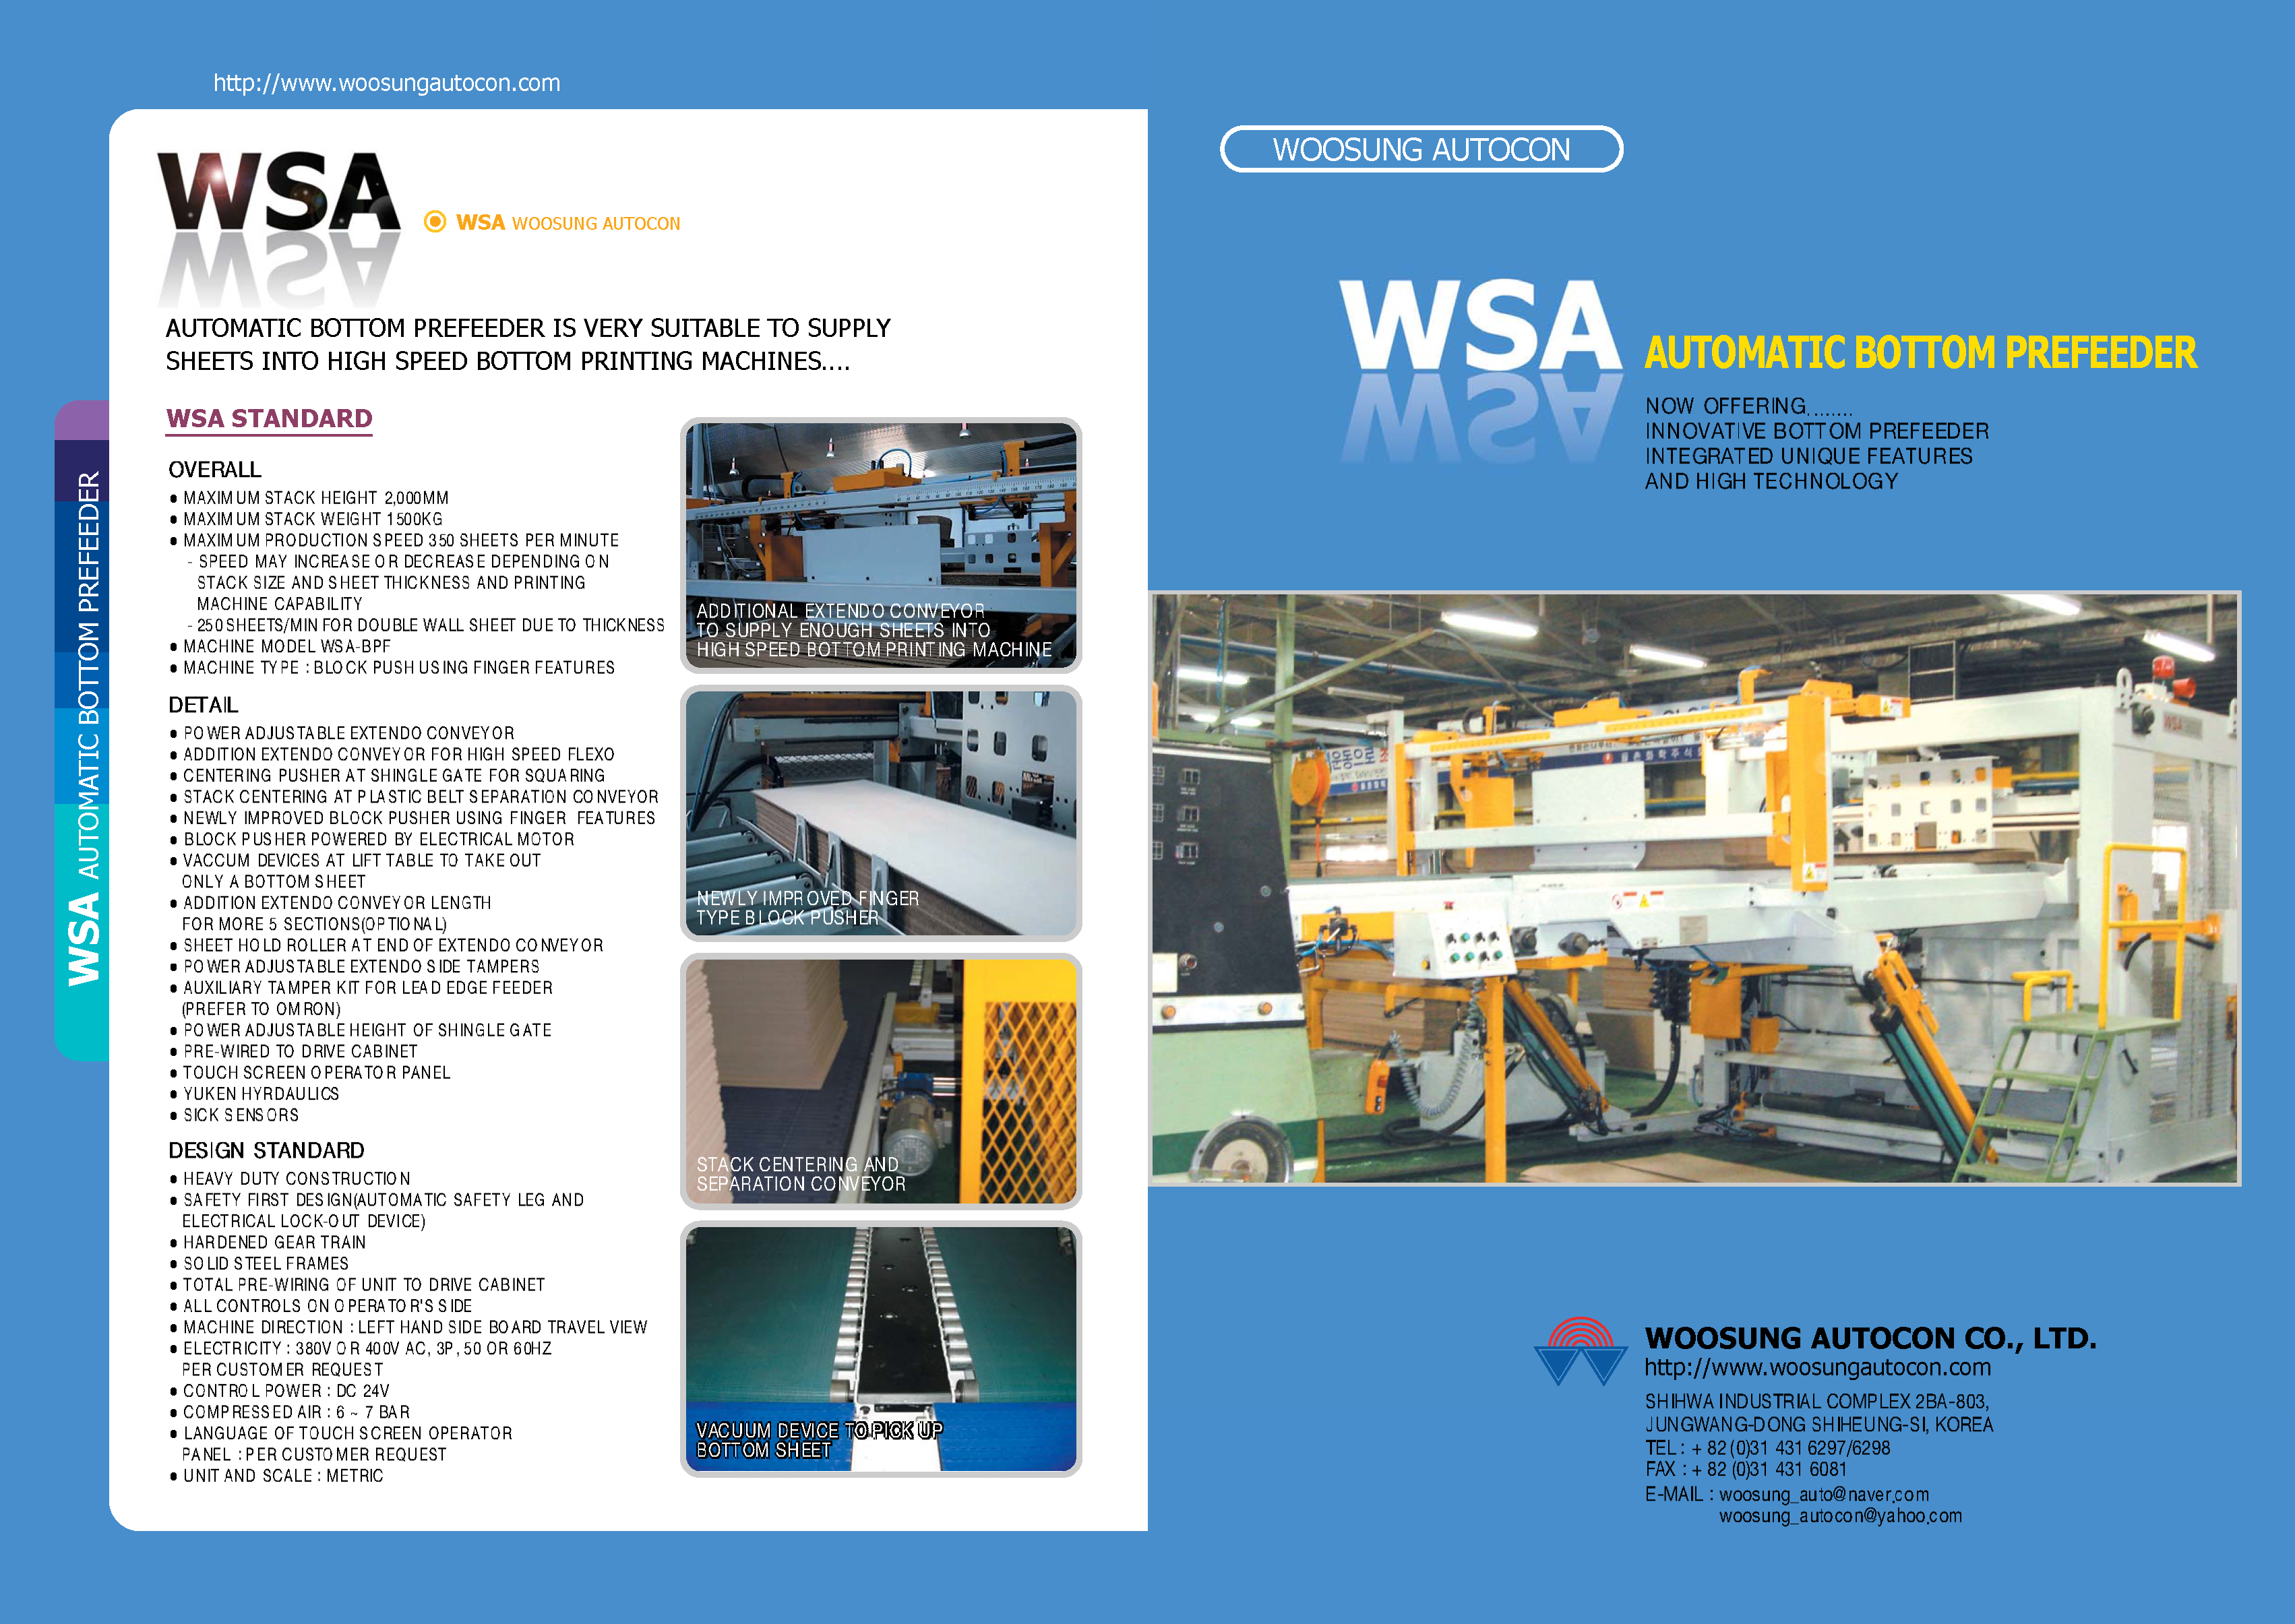 Learn more about WSA Bottom Print Prefeeders in the WSA Automatic Bottom Prefeeder Brochure